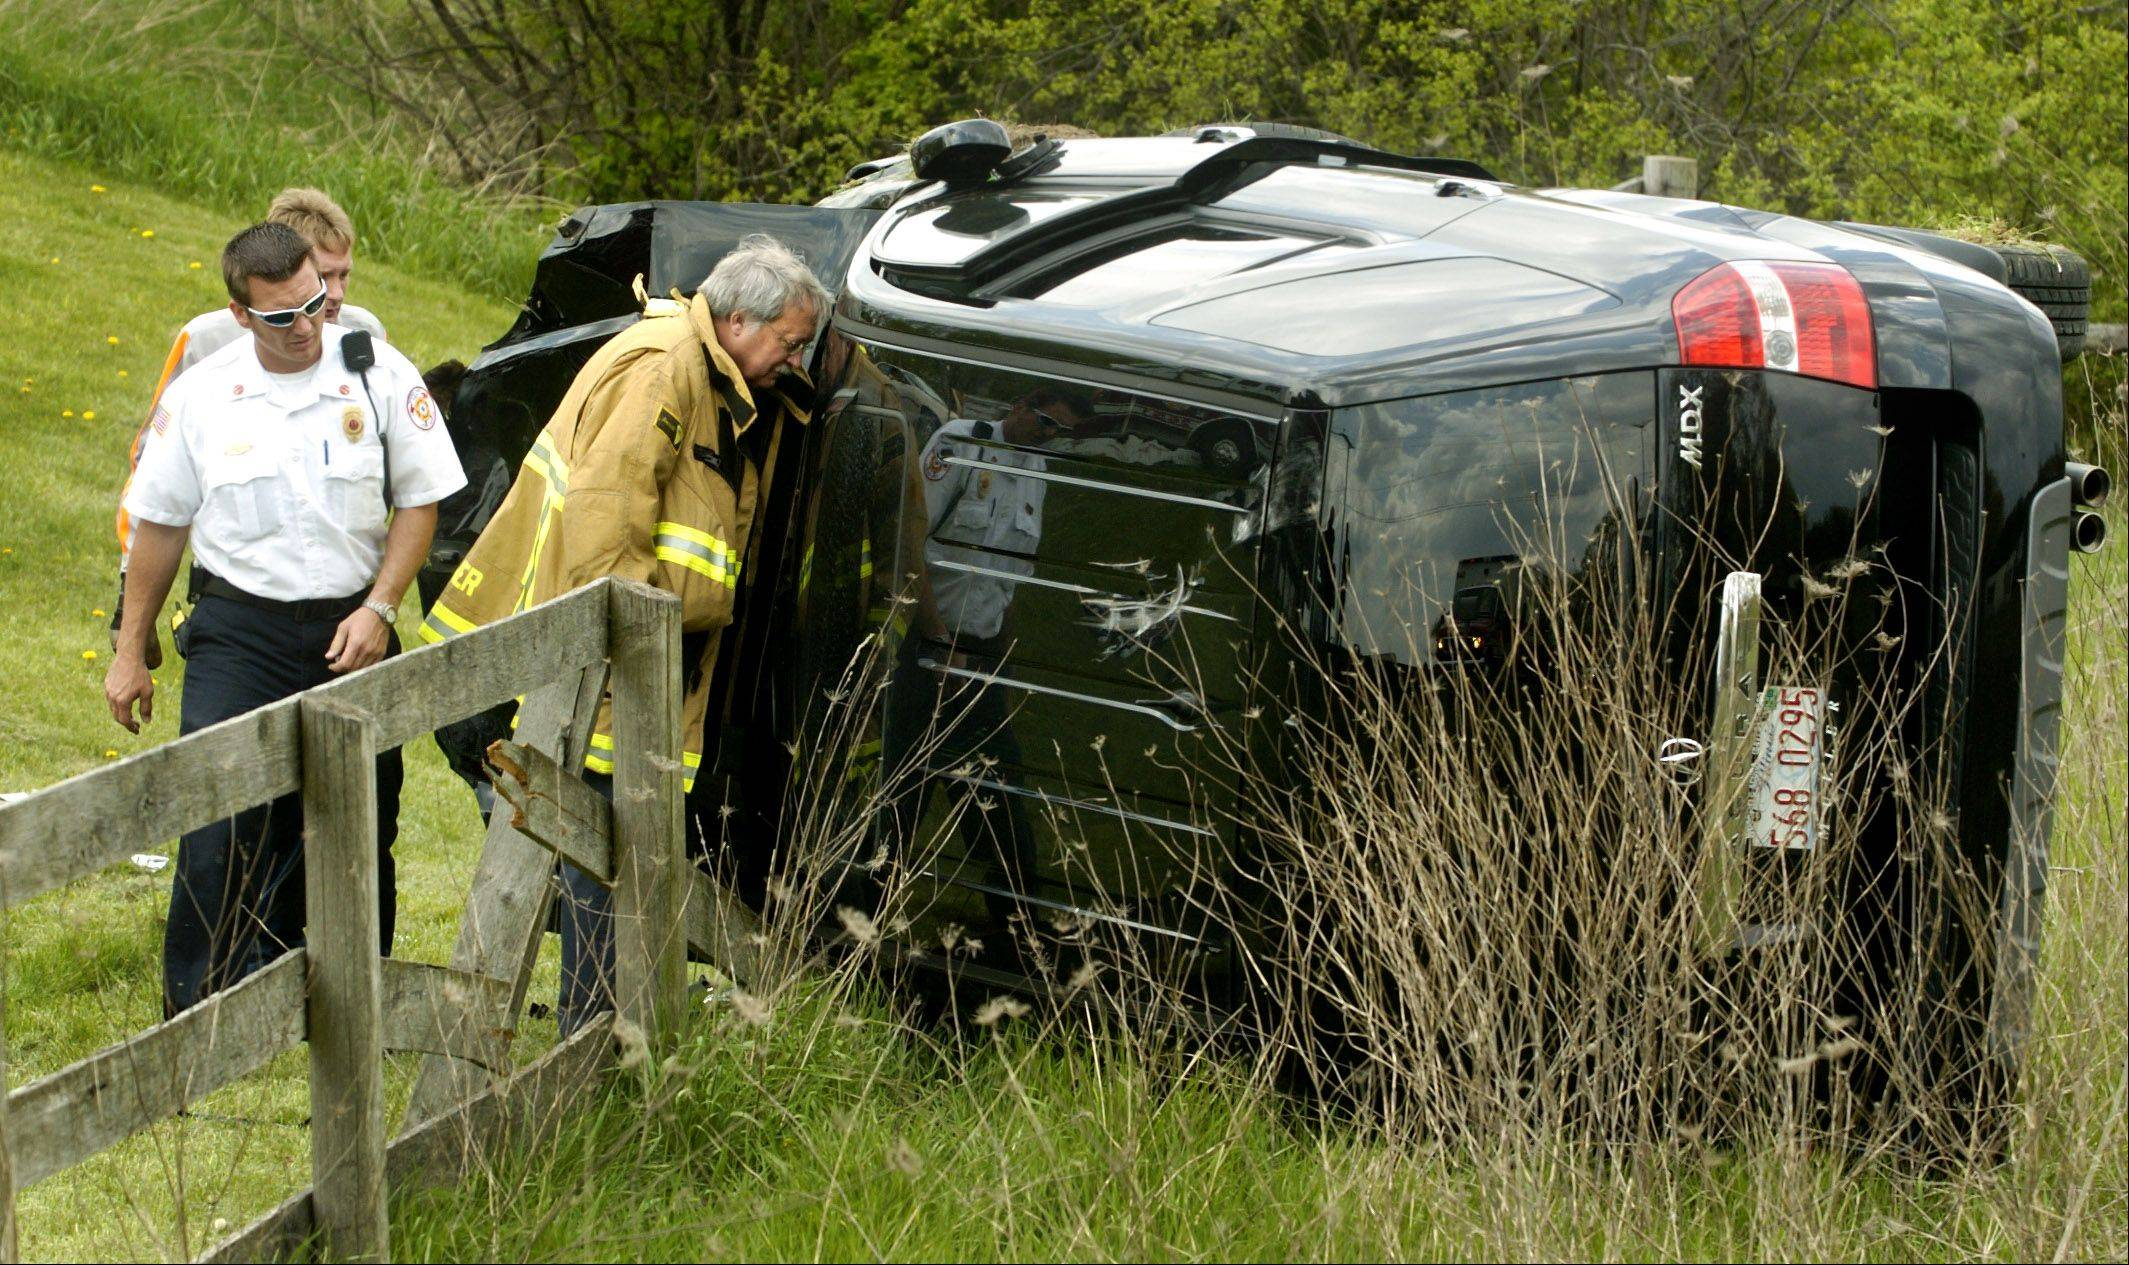 Greater Round Lake Fire Protection District's John Whitten, left, now on paid leave pending a disciplinary hearing, was a captain when he helped at this one-car rollover crash in Round Lake Park in 2005.